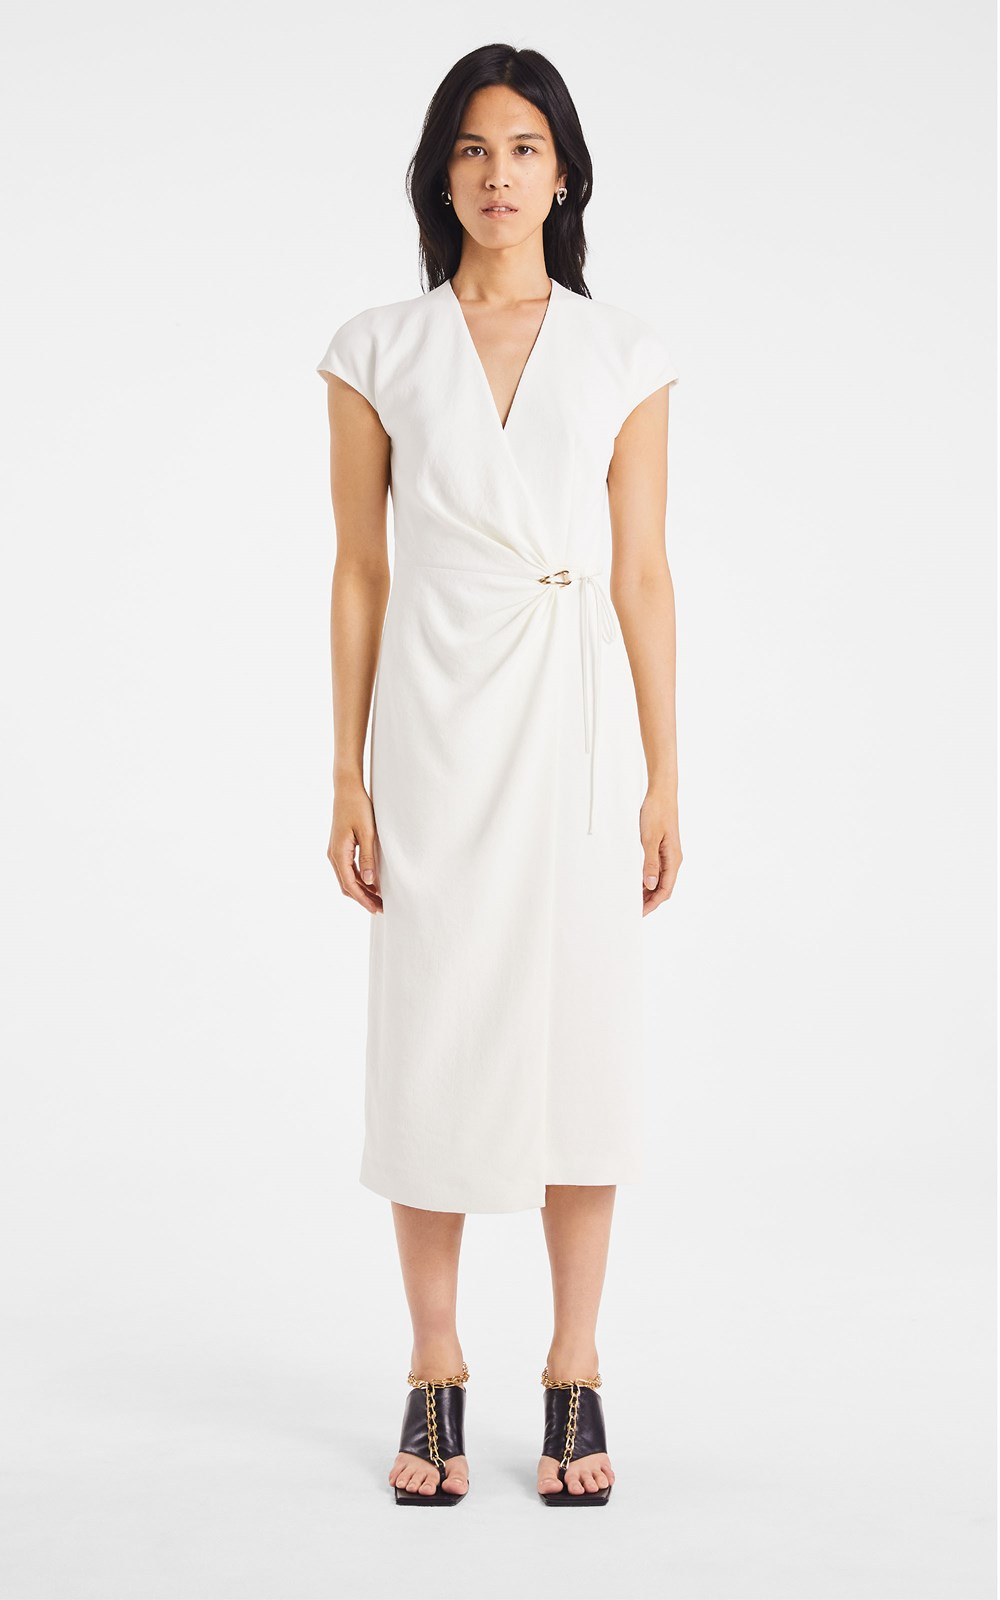 Dresses | WHITEWASH LINK WRAP DRESS